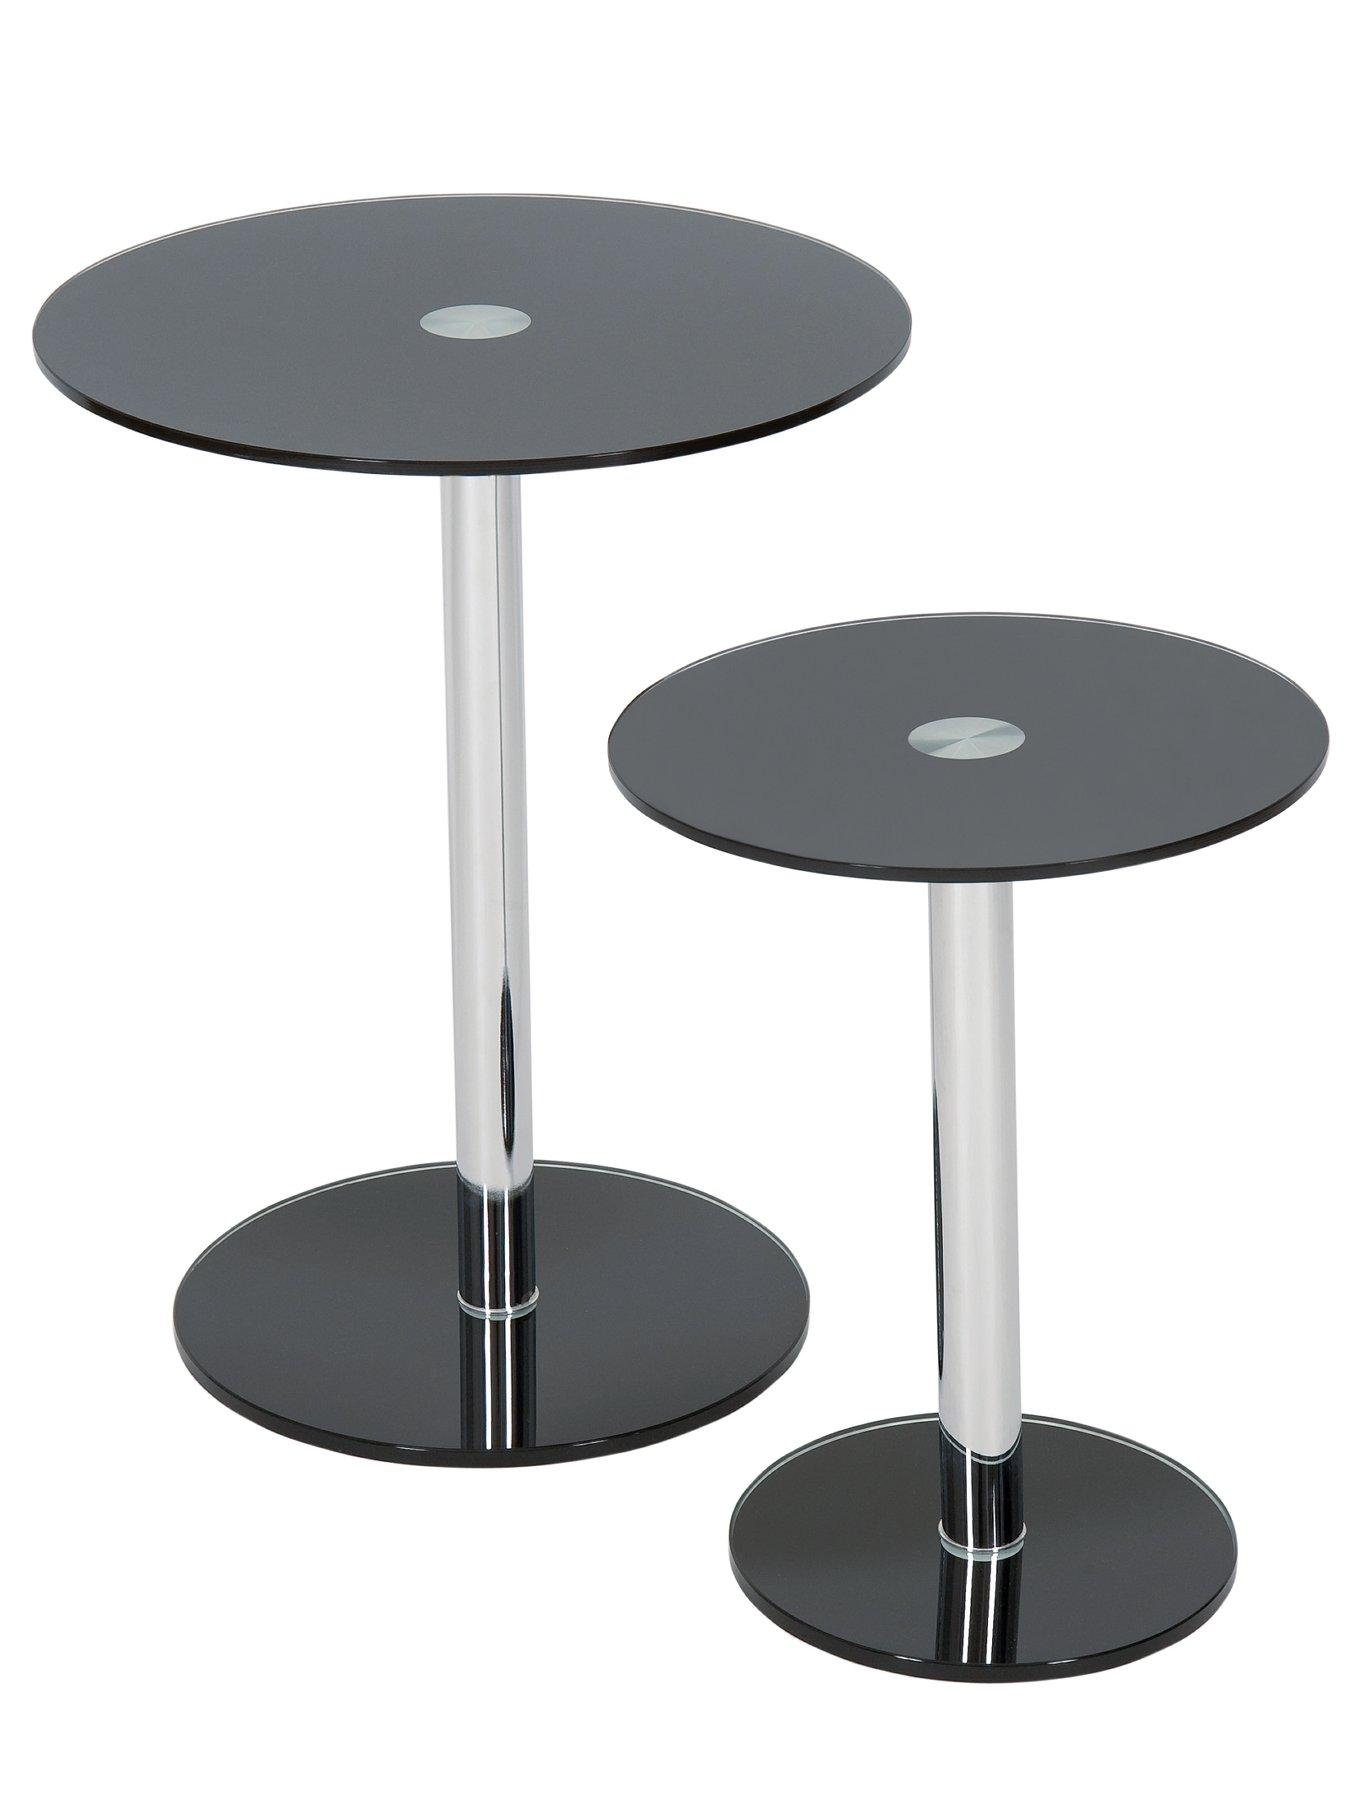 Round Expanding Table For Sale Images